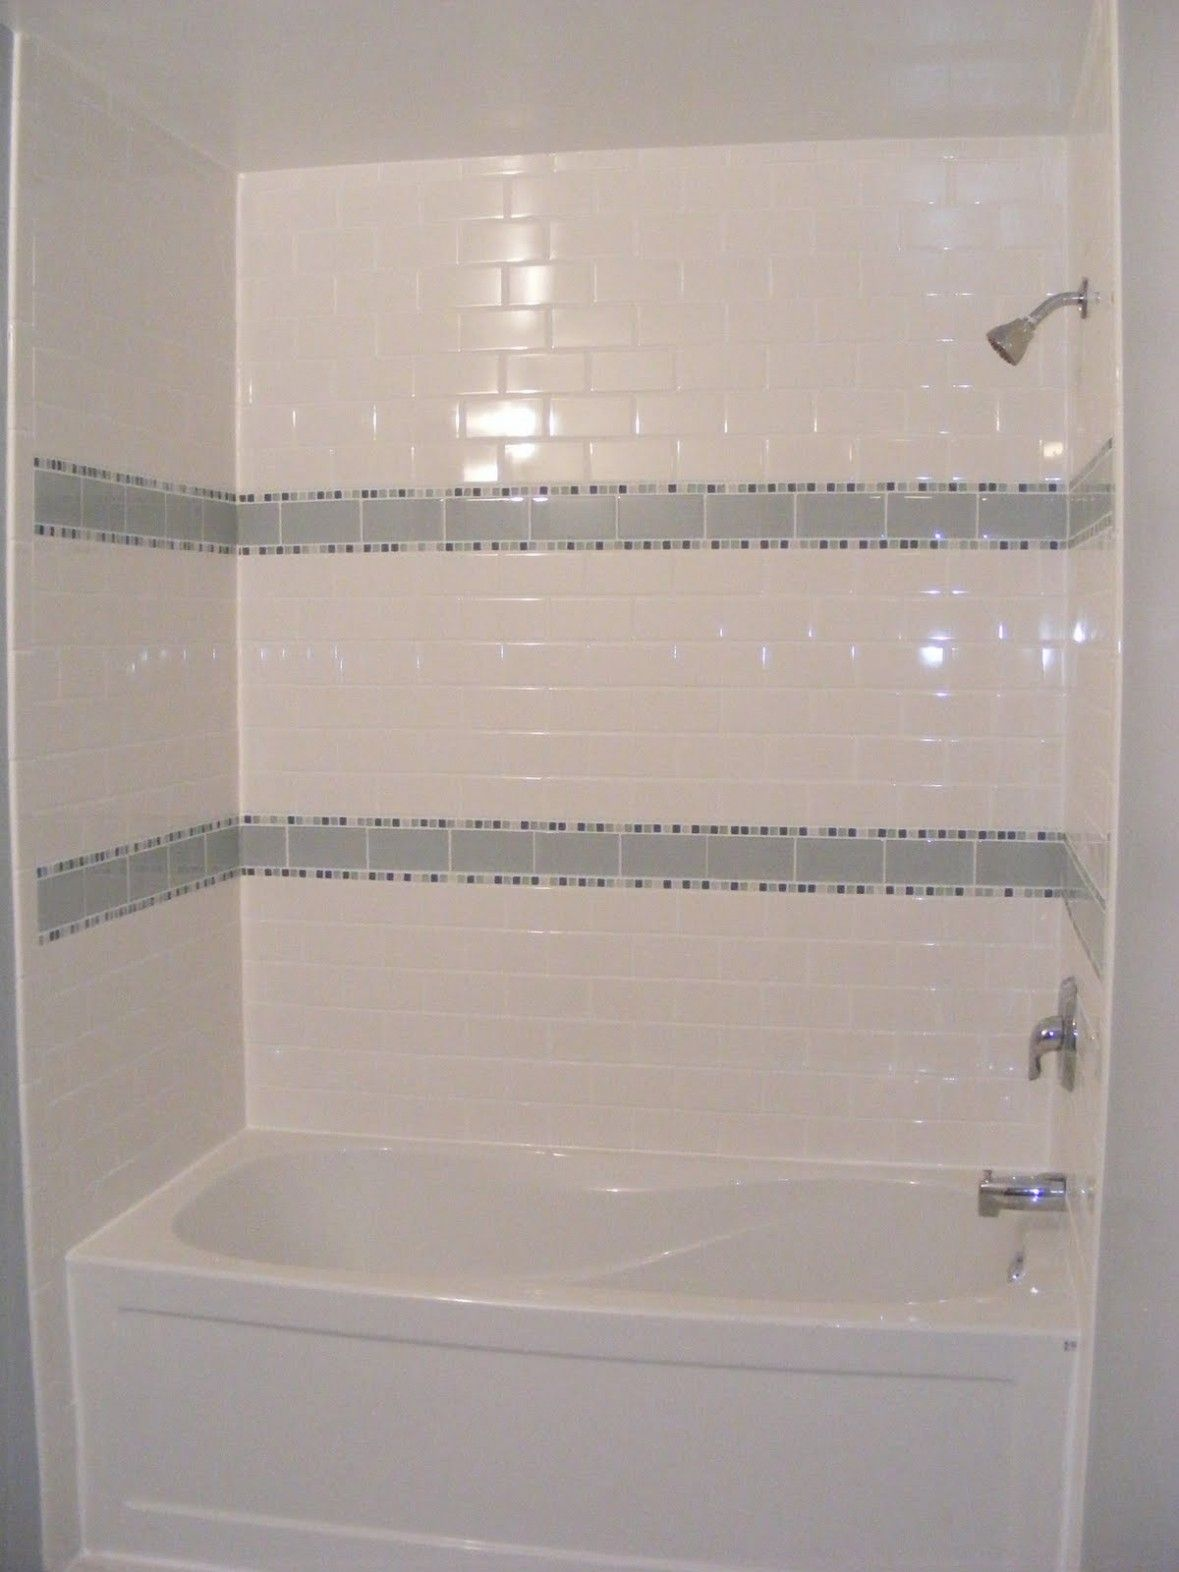 Bathroom Amusing Bath Tile Ideas Beautiful Gloss White Tile Bathroom Wall Subway Shower Bathtub